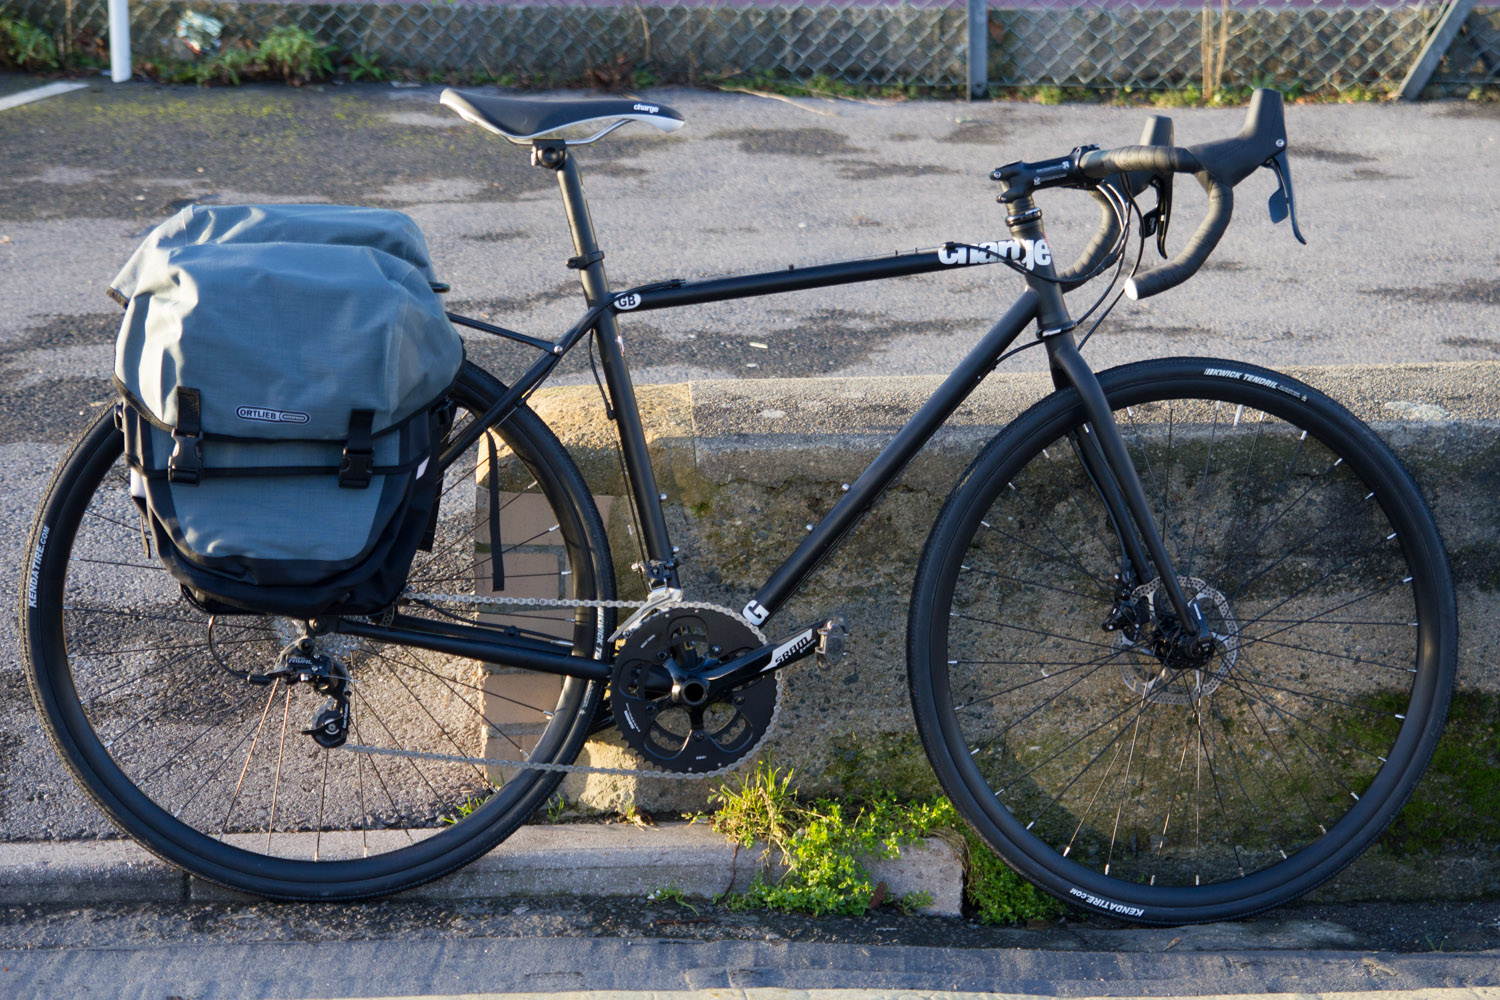 plug 5 with ortlieb bike packer plus panniers and tubus rack